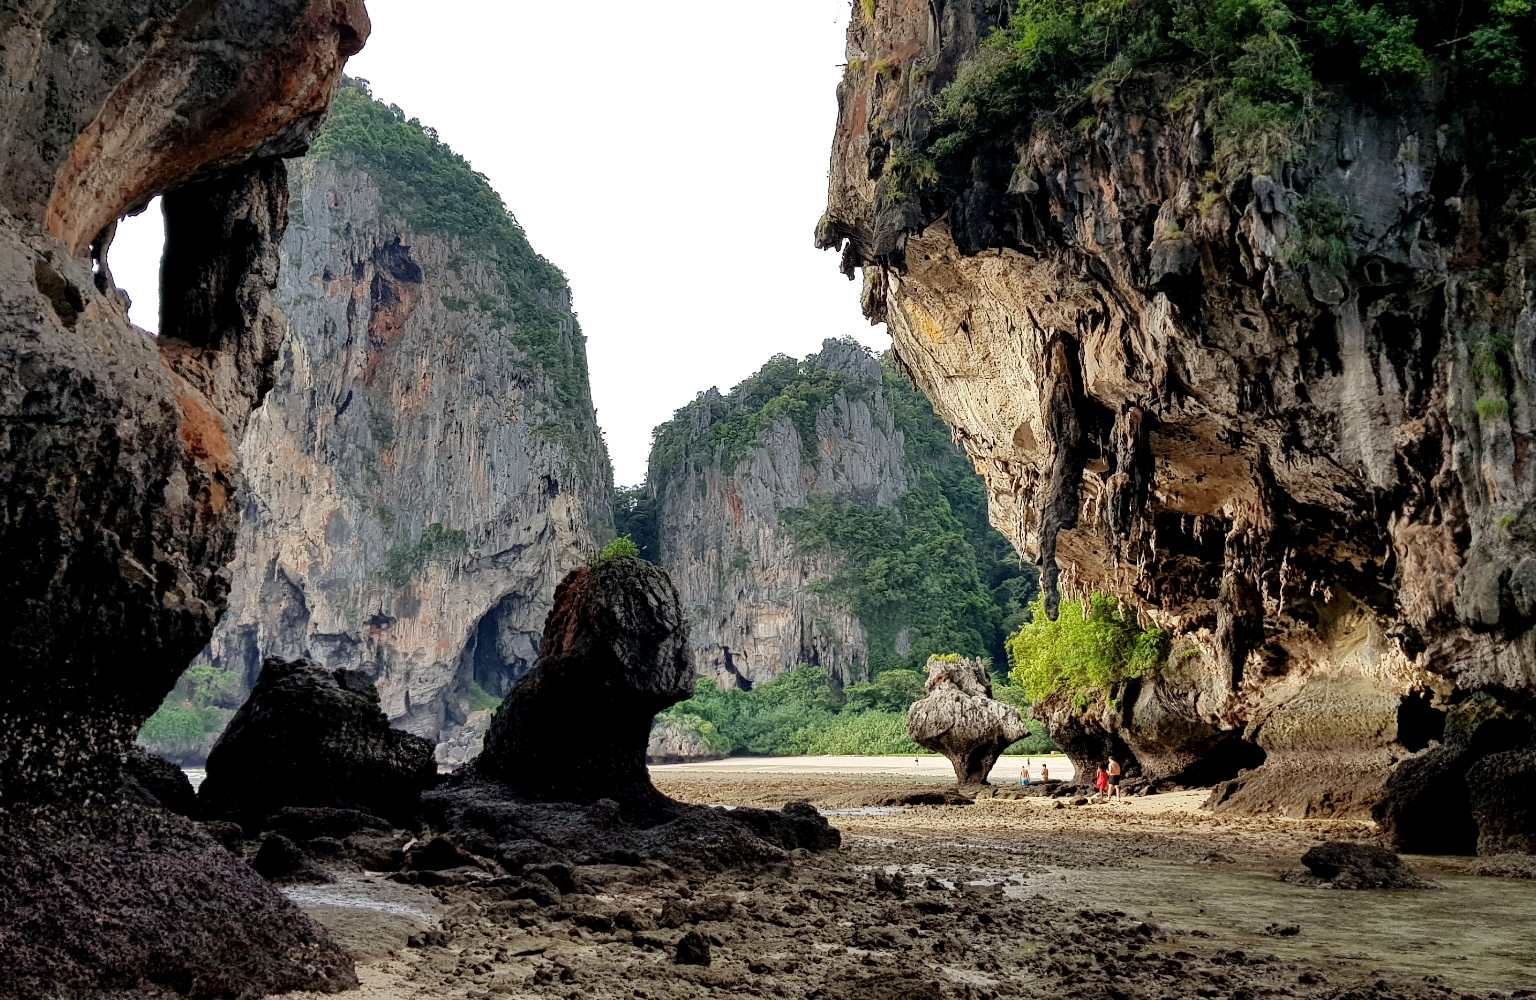 What to do in Railay?